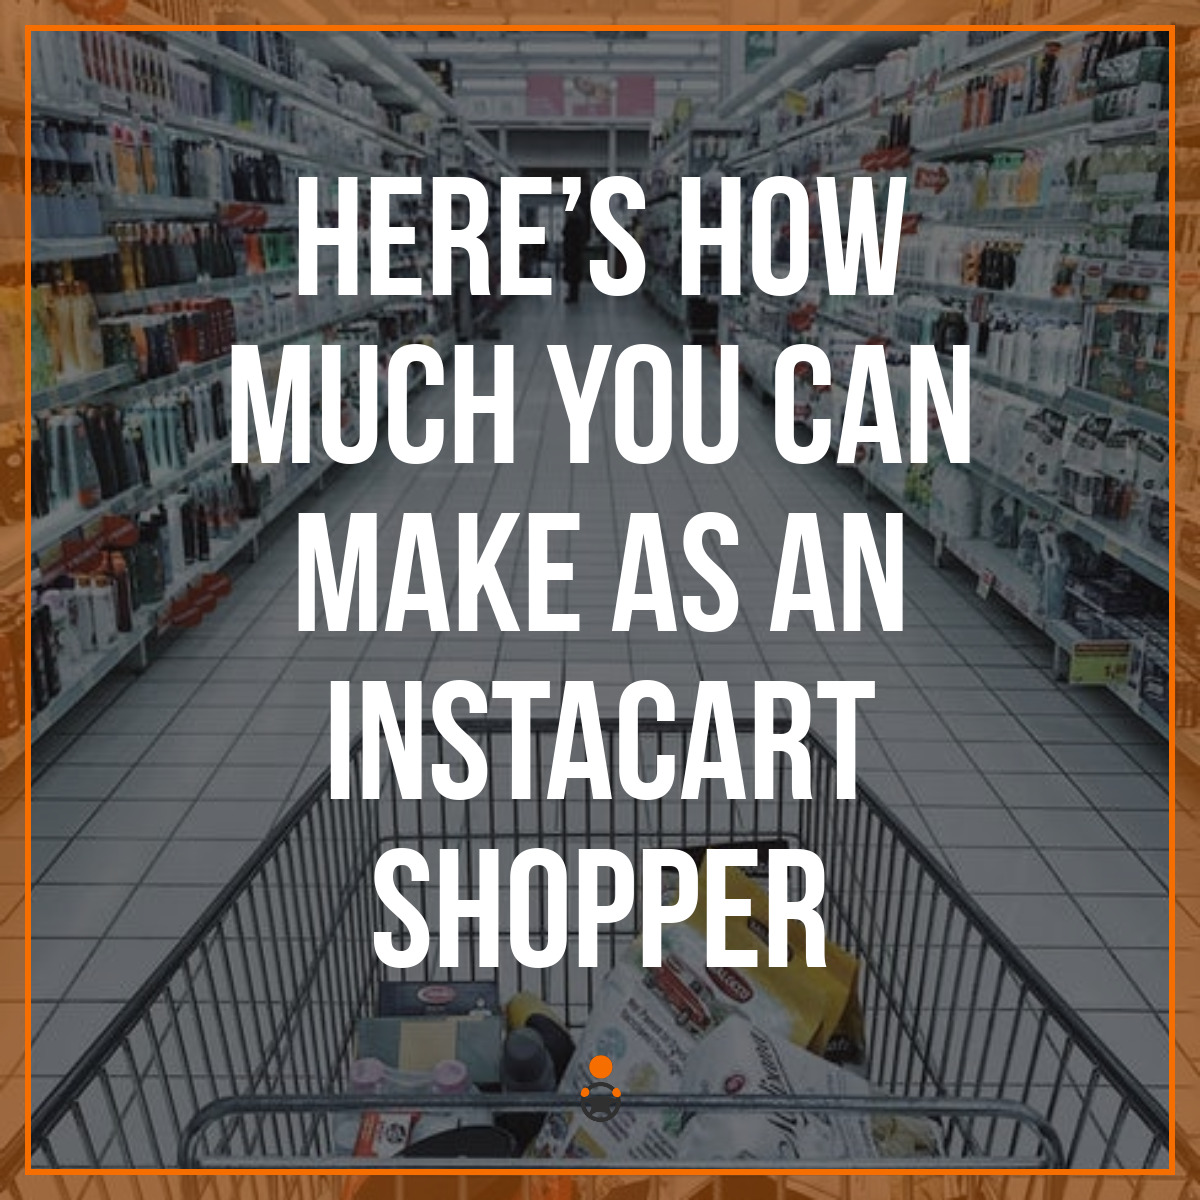 How Much Does Instacart Pay Shoppers? [Instacart Earnings